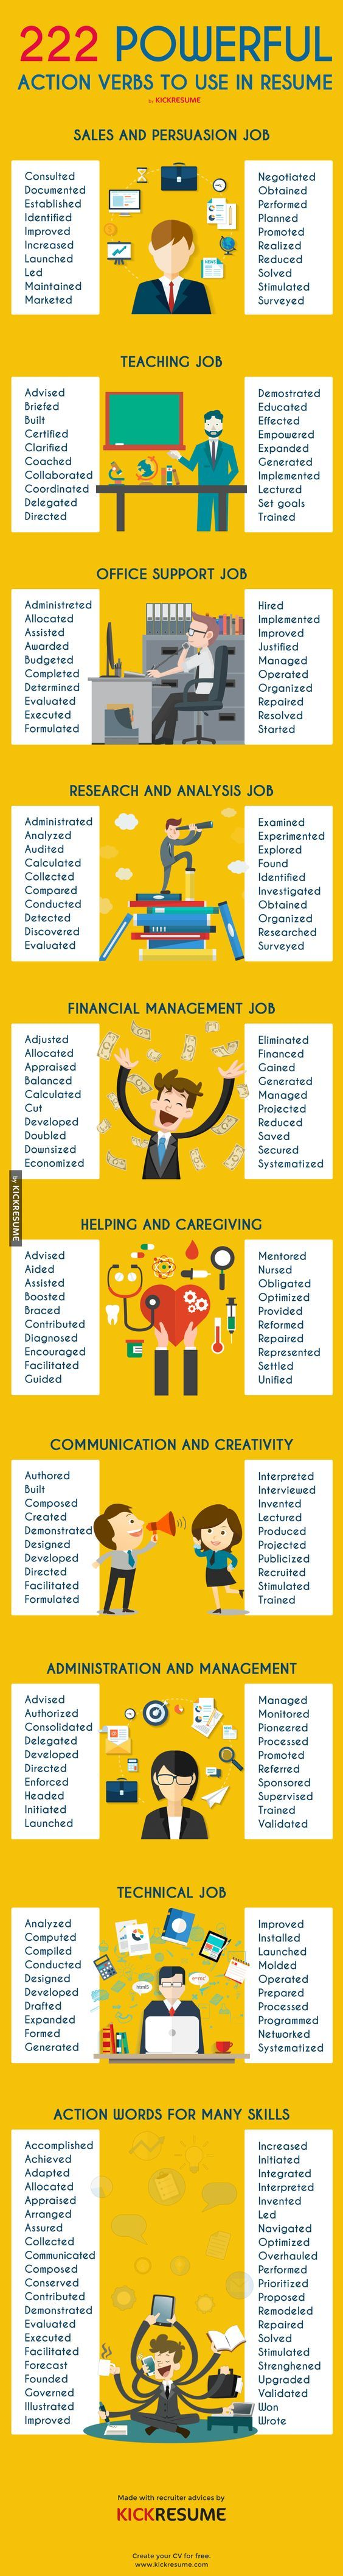 25 unique resume action words ideas on pinterest action words